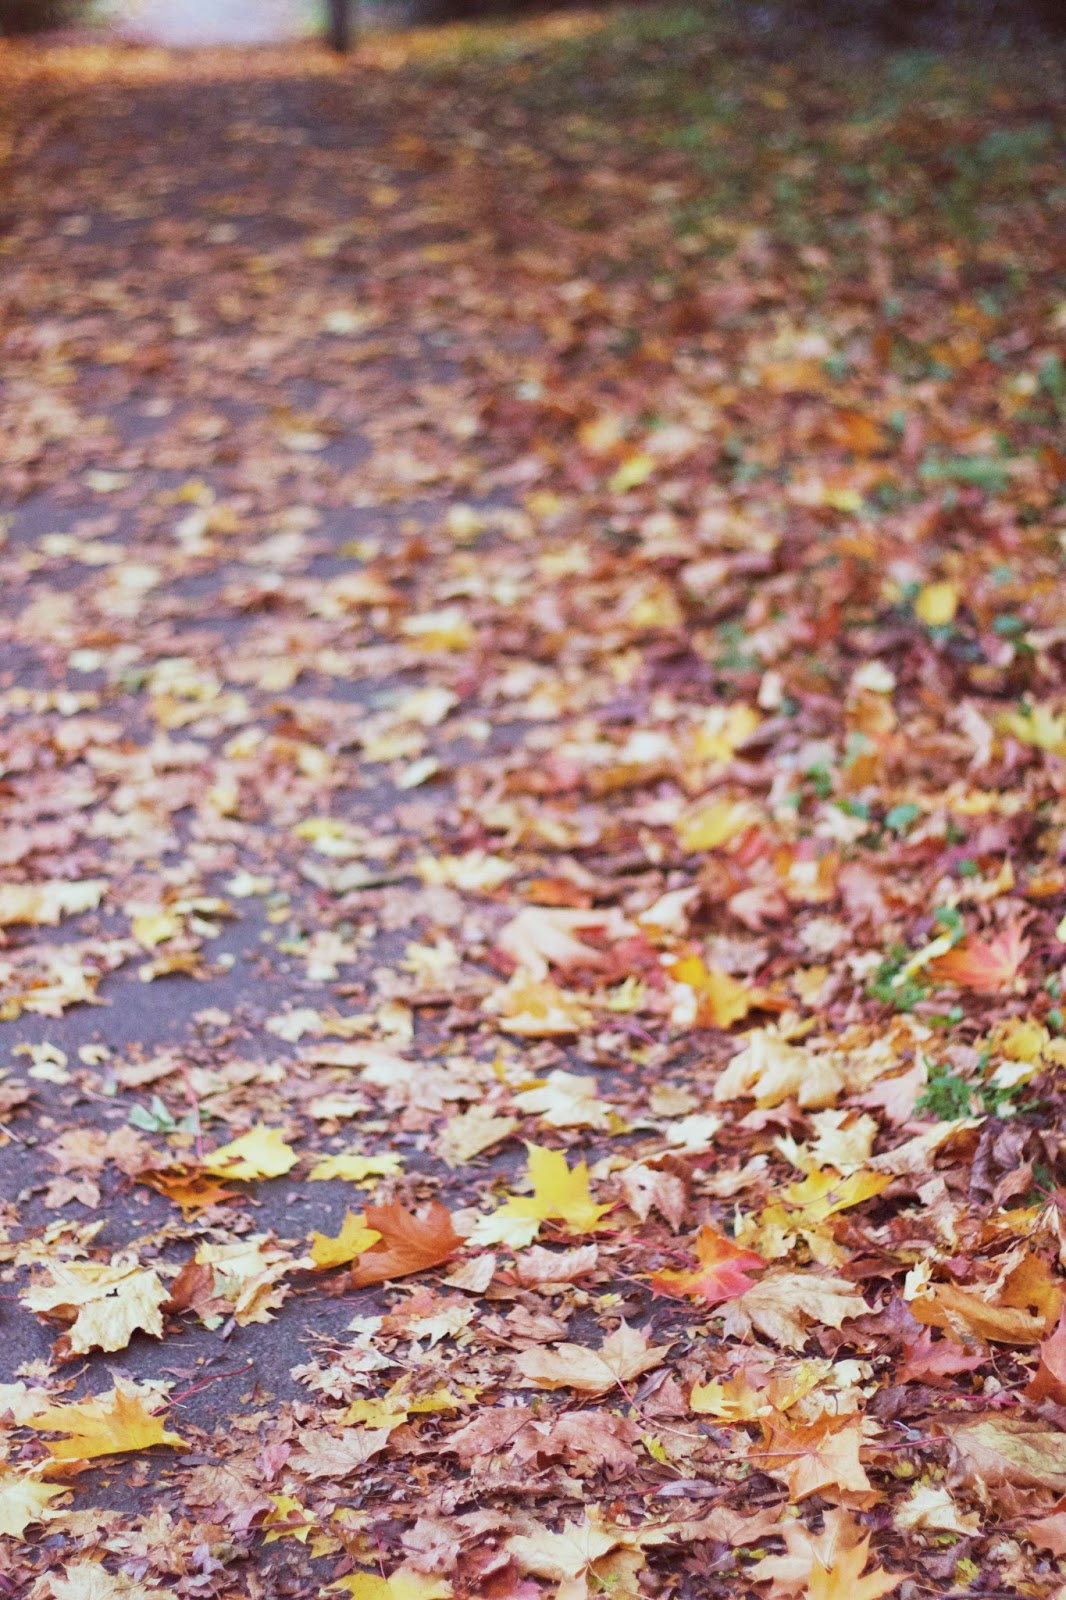 Leaves, Pile of leaves, Leaf, Autumn, Fall, Belper, Katie Writes,